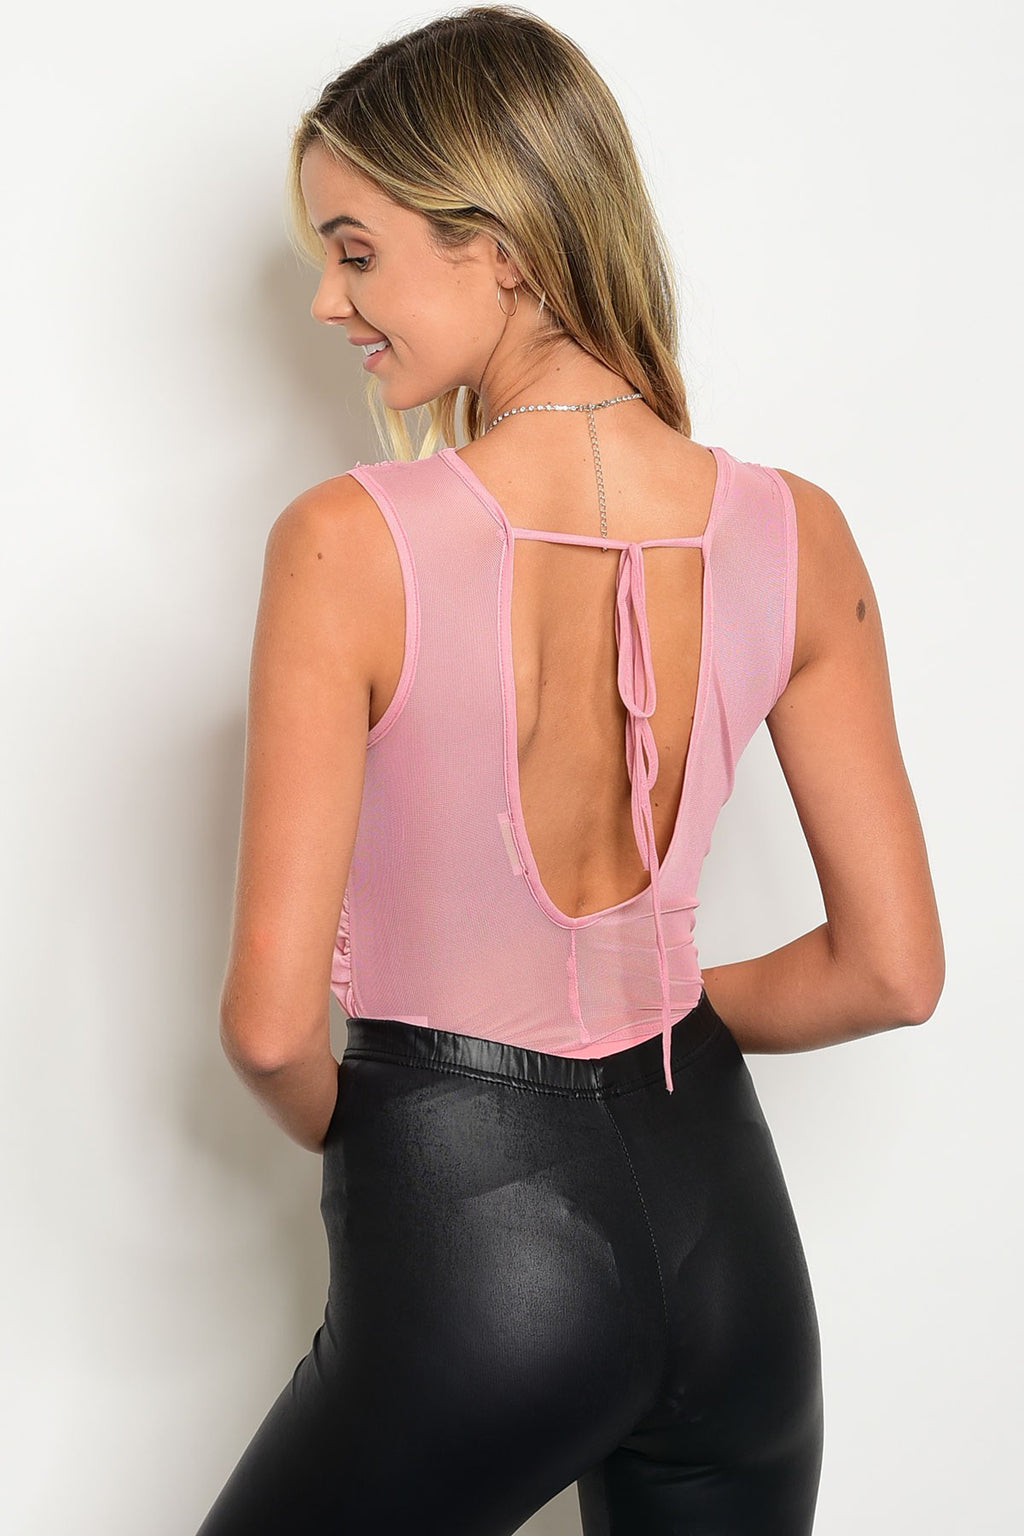 Blush Sleeveless Mesh Bodysuit with crossed fabric. Open back with tie.